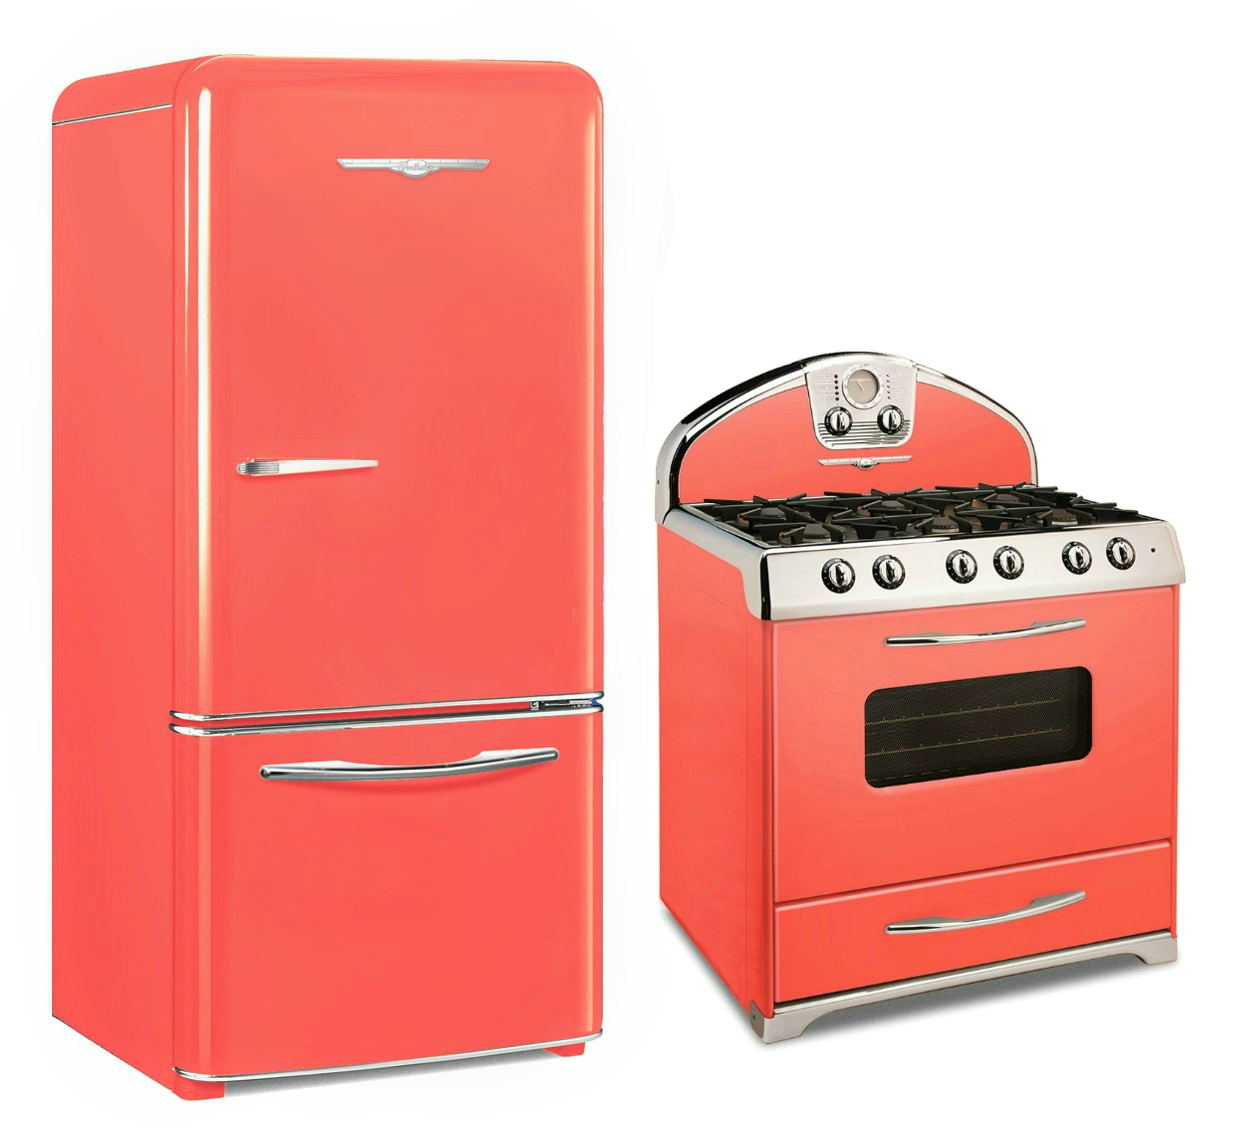 Northstar Living Coral appliances - by Elmira Stove Works